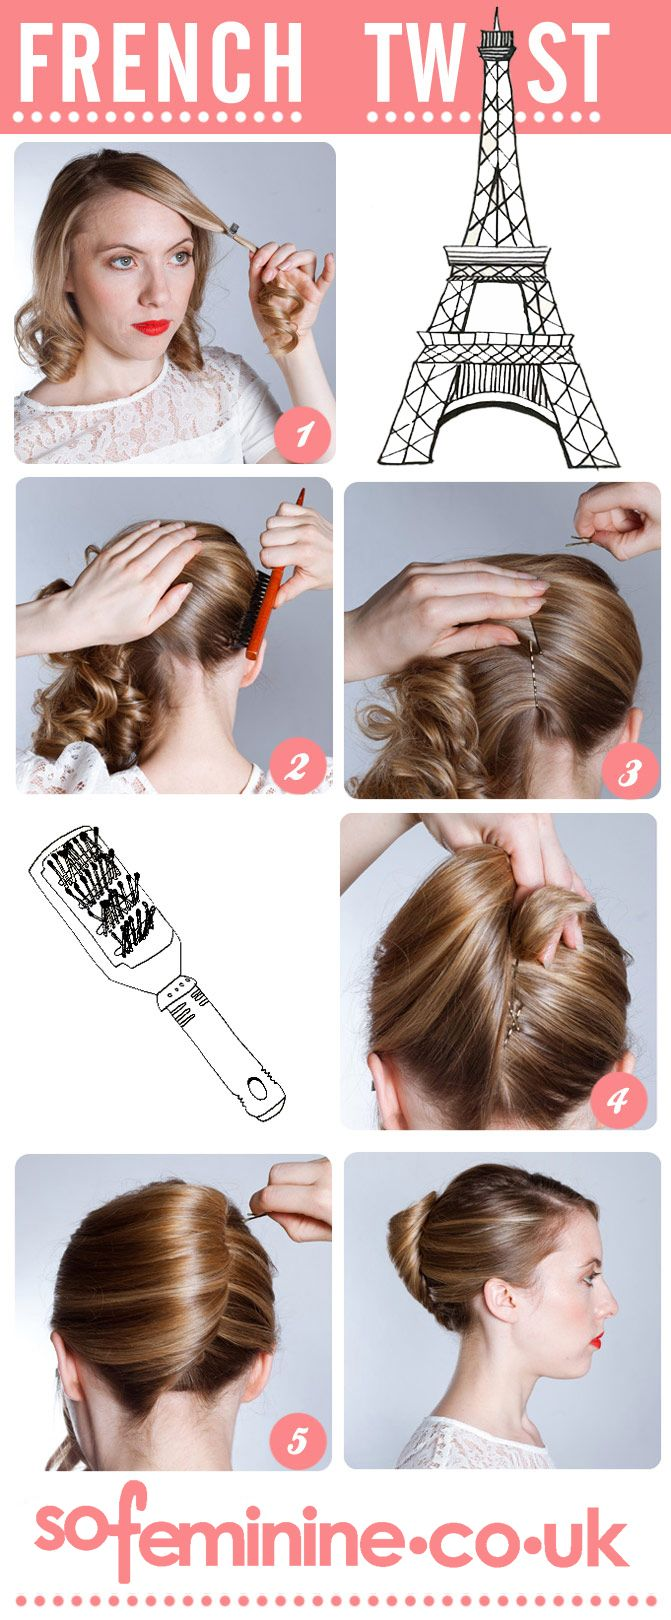 Spoil you locks to a bit of romance. Follow our easy how to do a French Twist guide - et voila!